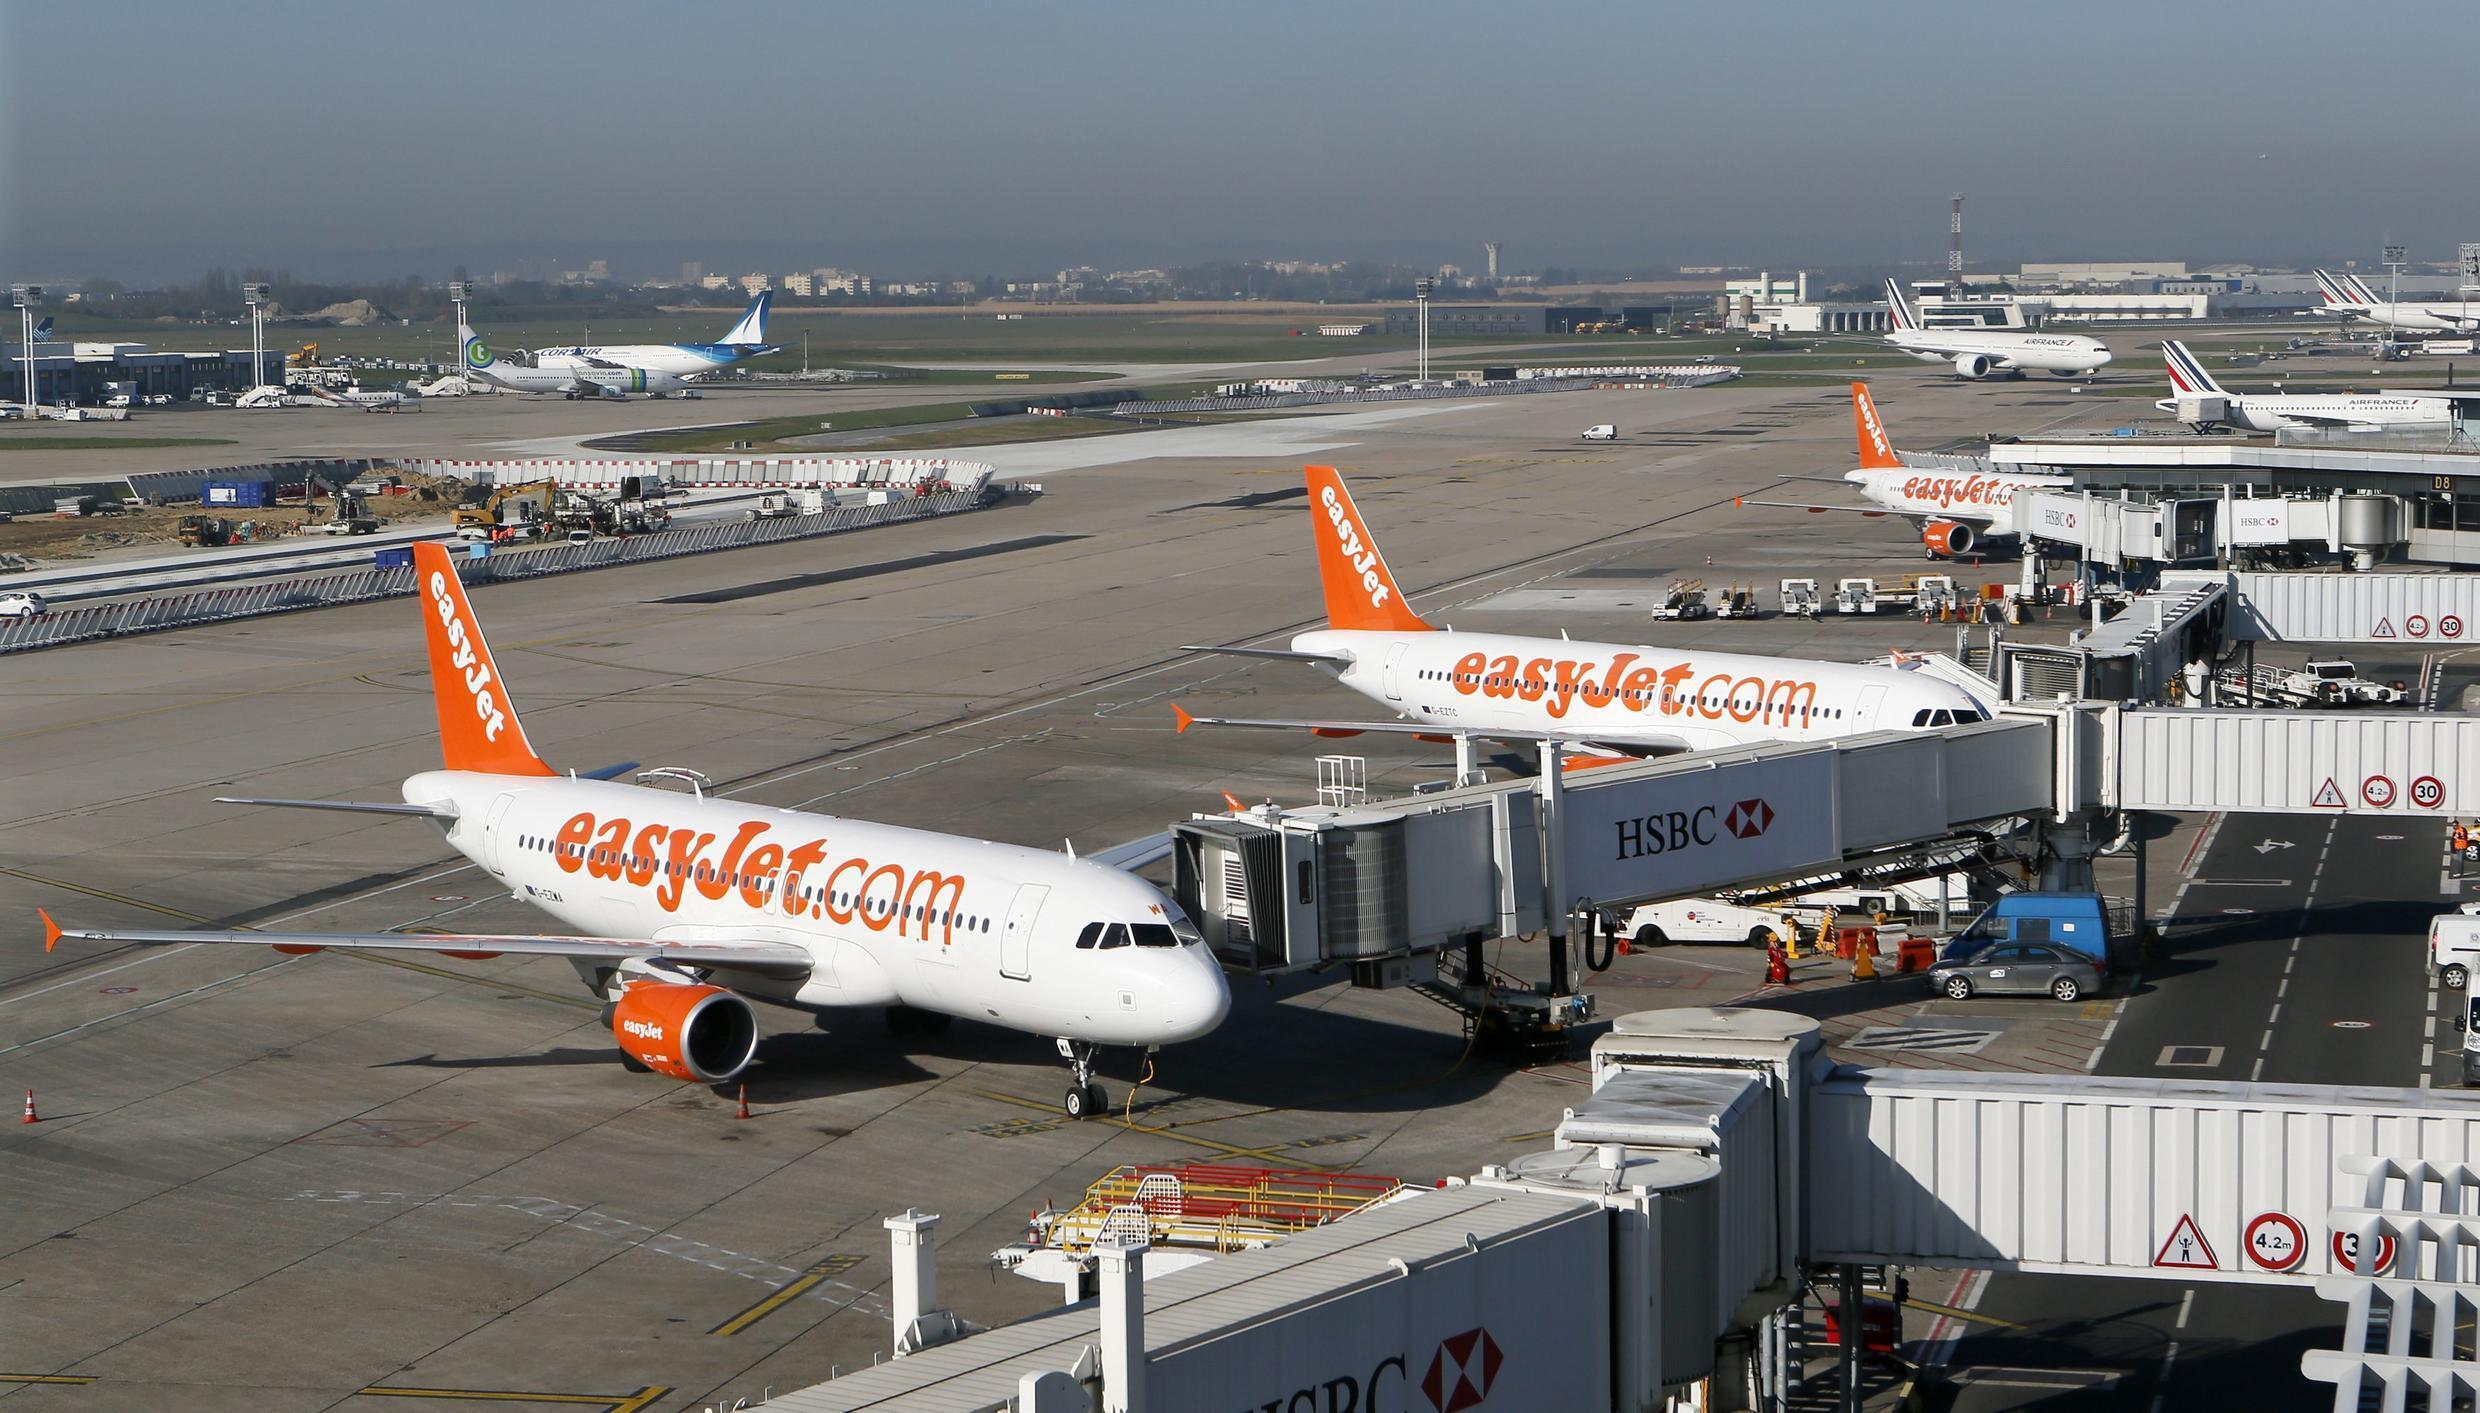 EasyJet aircrafts sitting on the tarmac during an air traffic controller's strike at Orly airport, near Paris, 9 April 2015.